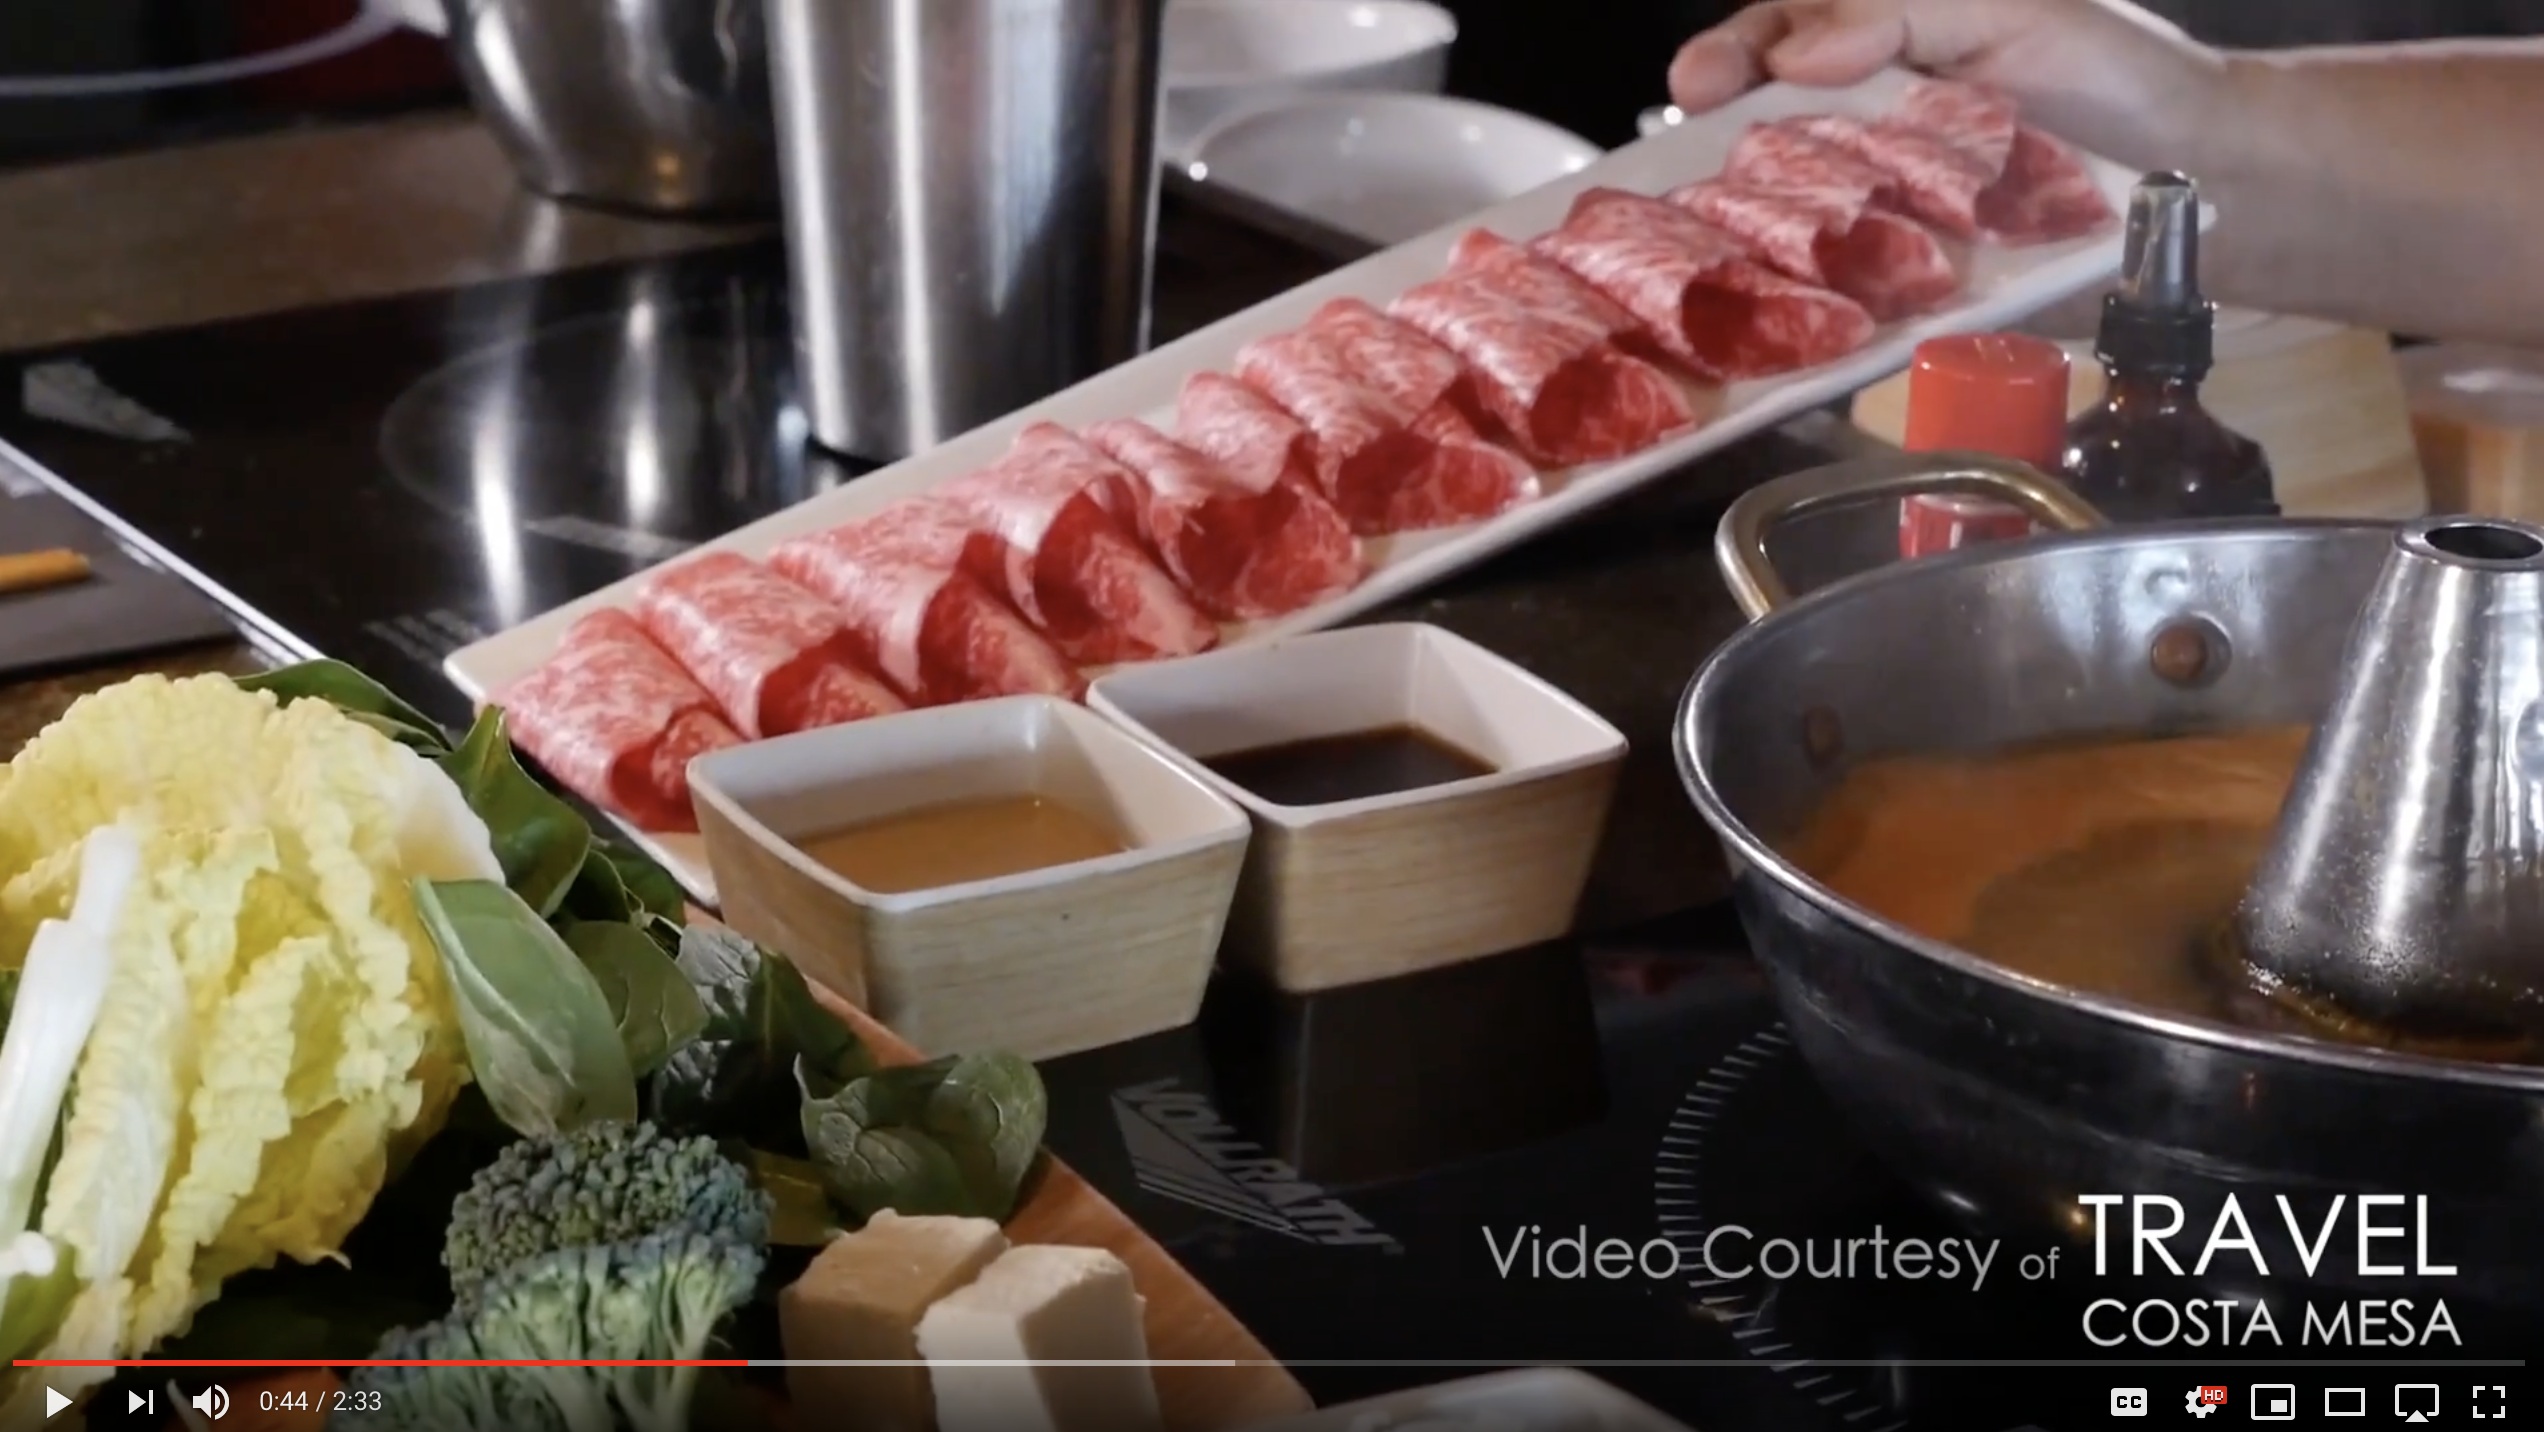 Screen shot of YouTube video featuring Tabu Shabu cuisine